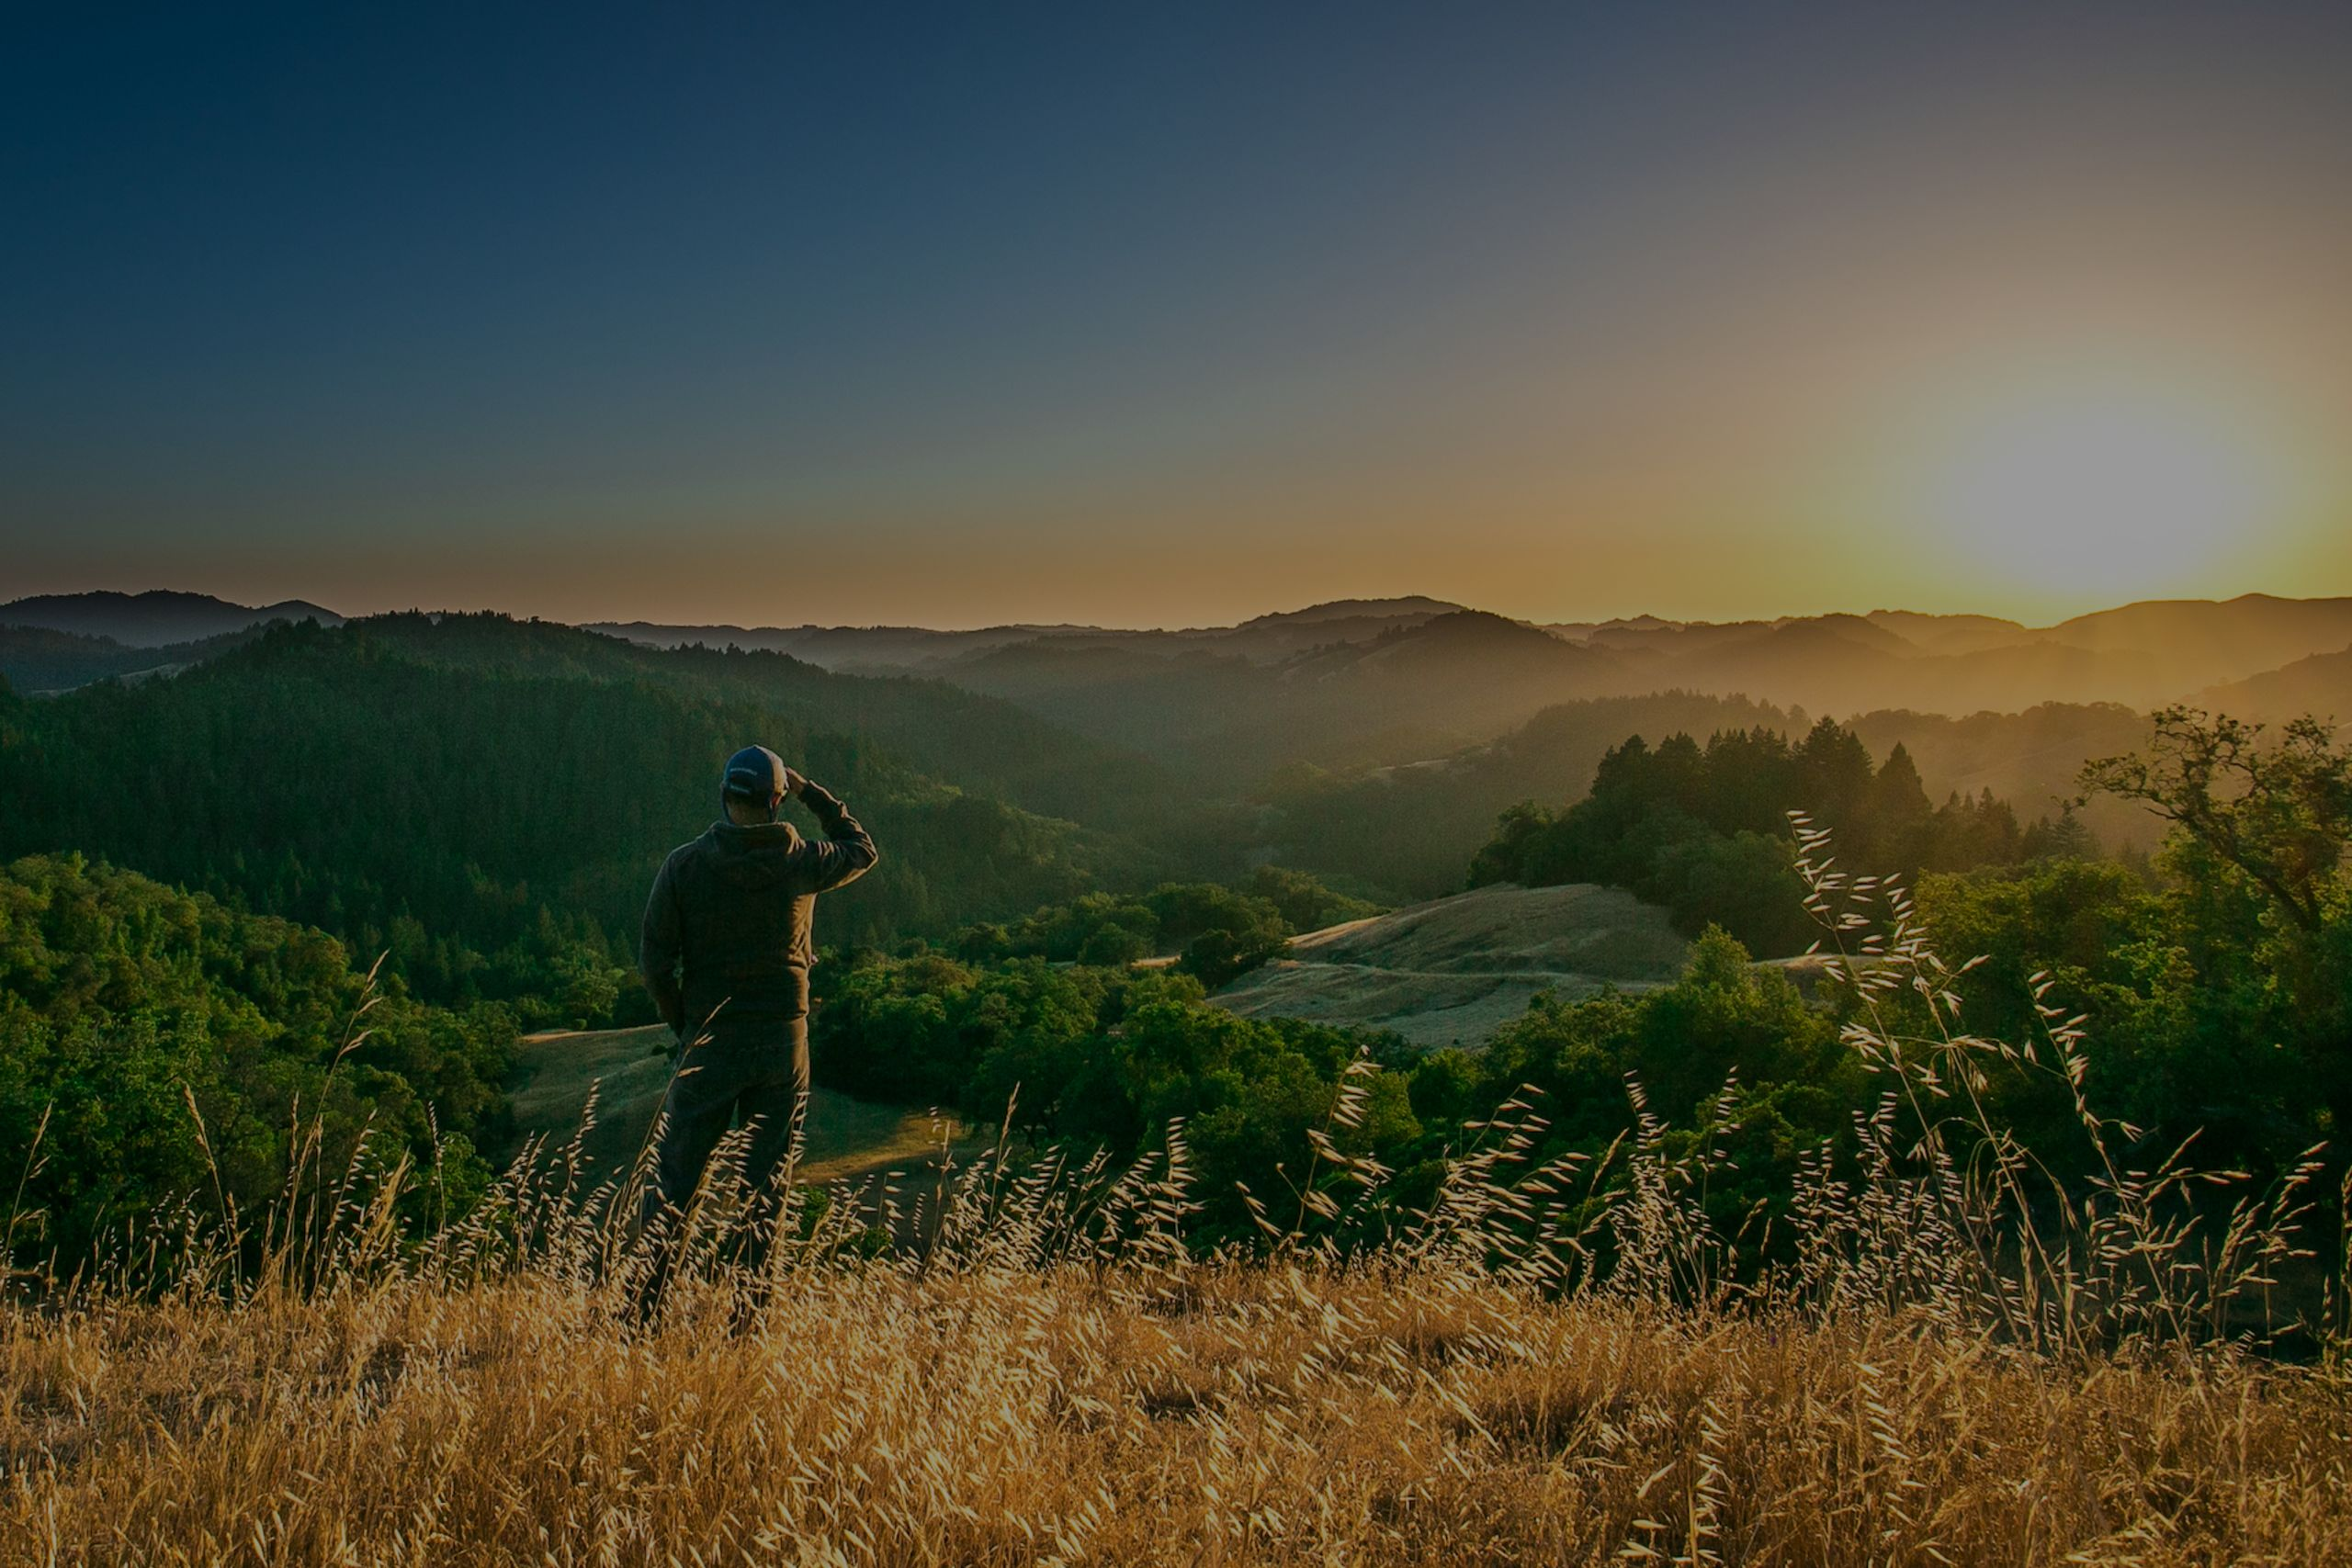 What Are The Top Property Markets In Sonoma County?